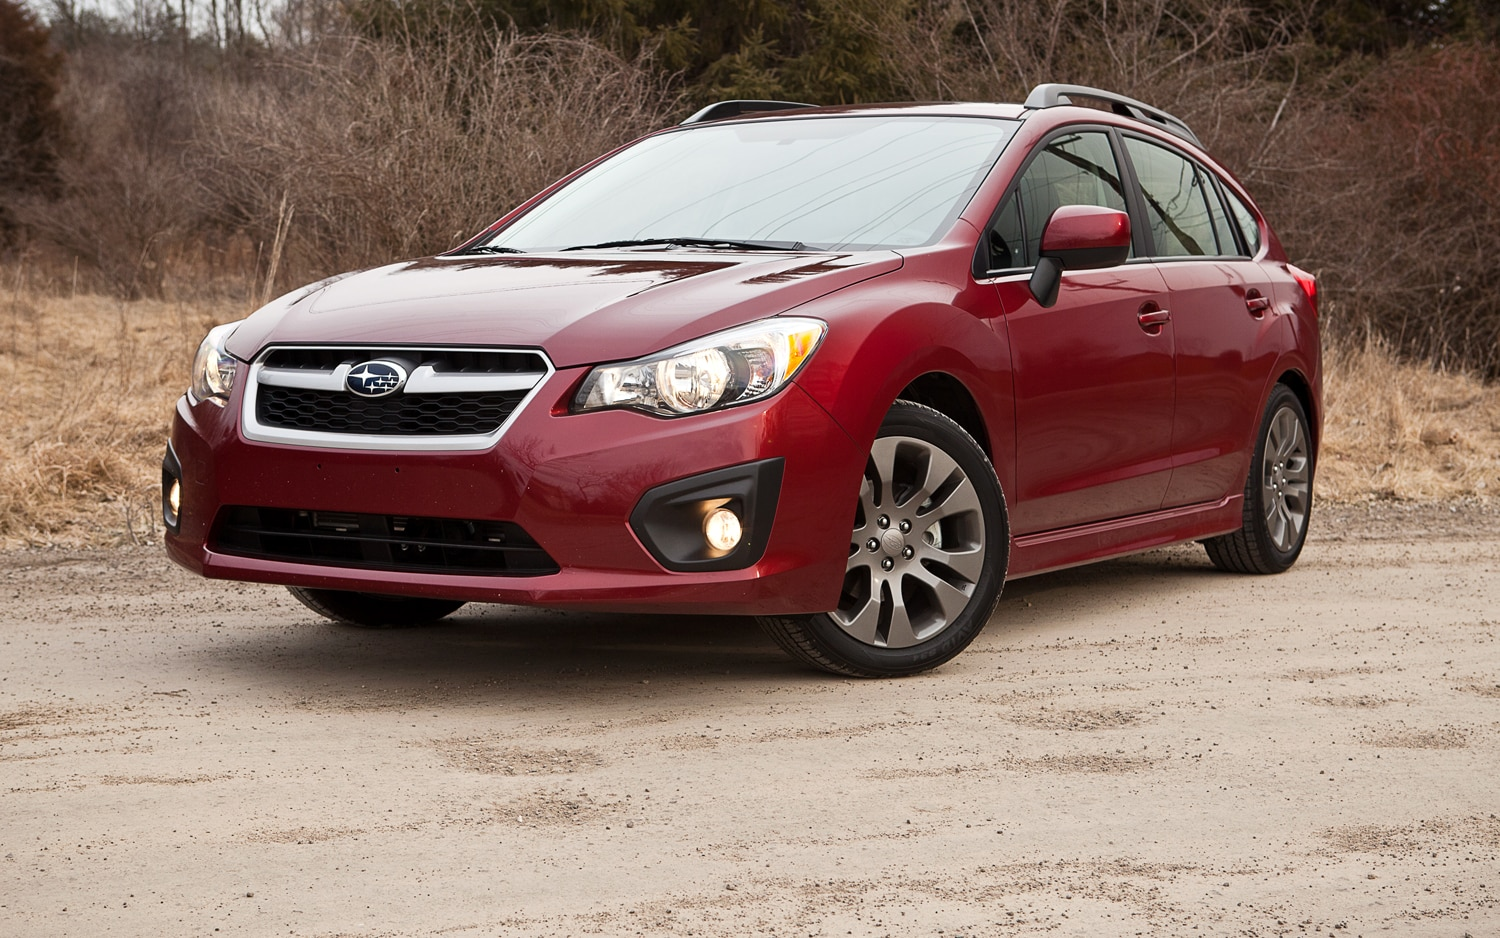 2012 Subaru Impreza Front Left View1